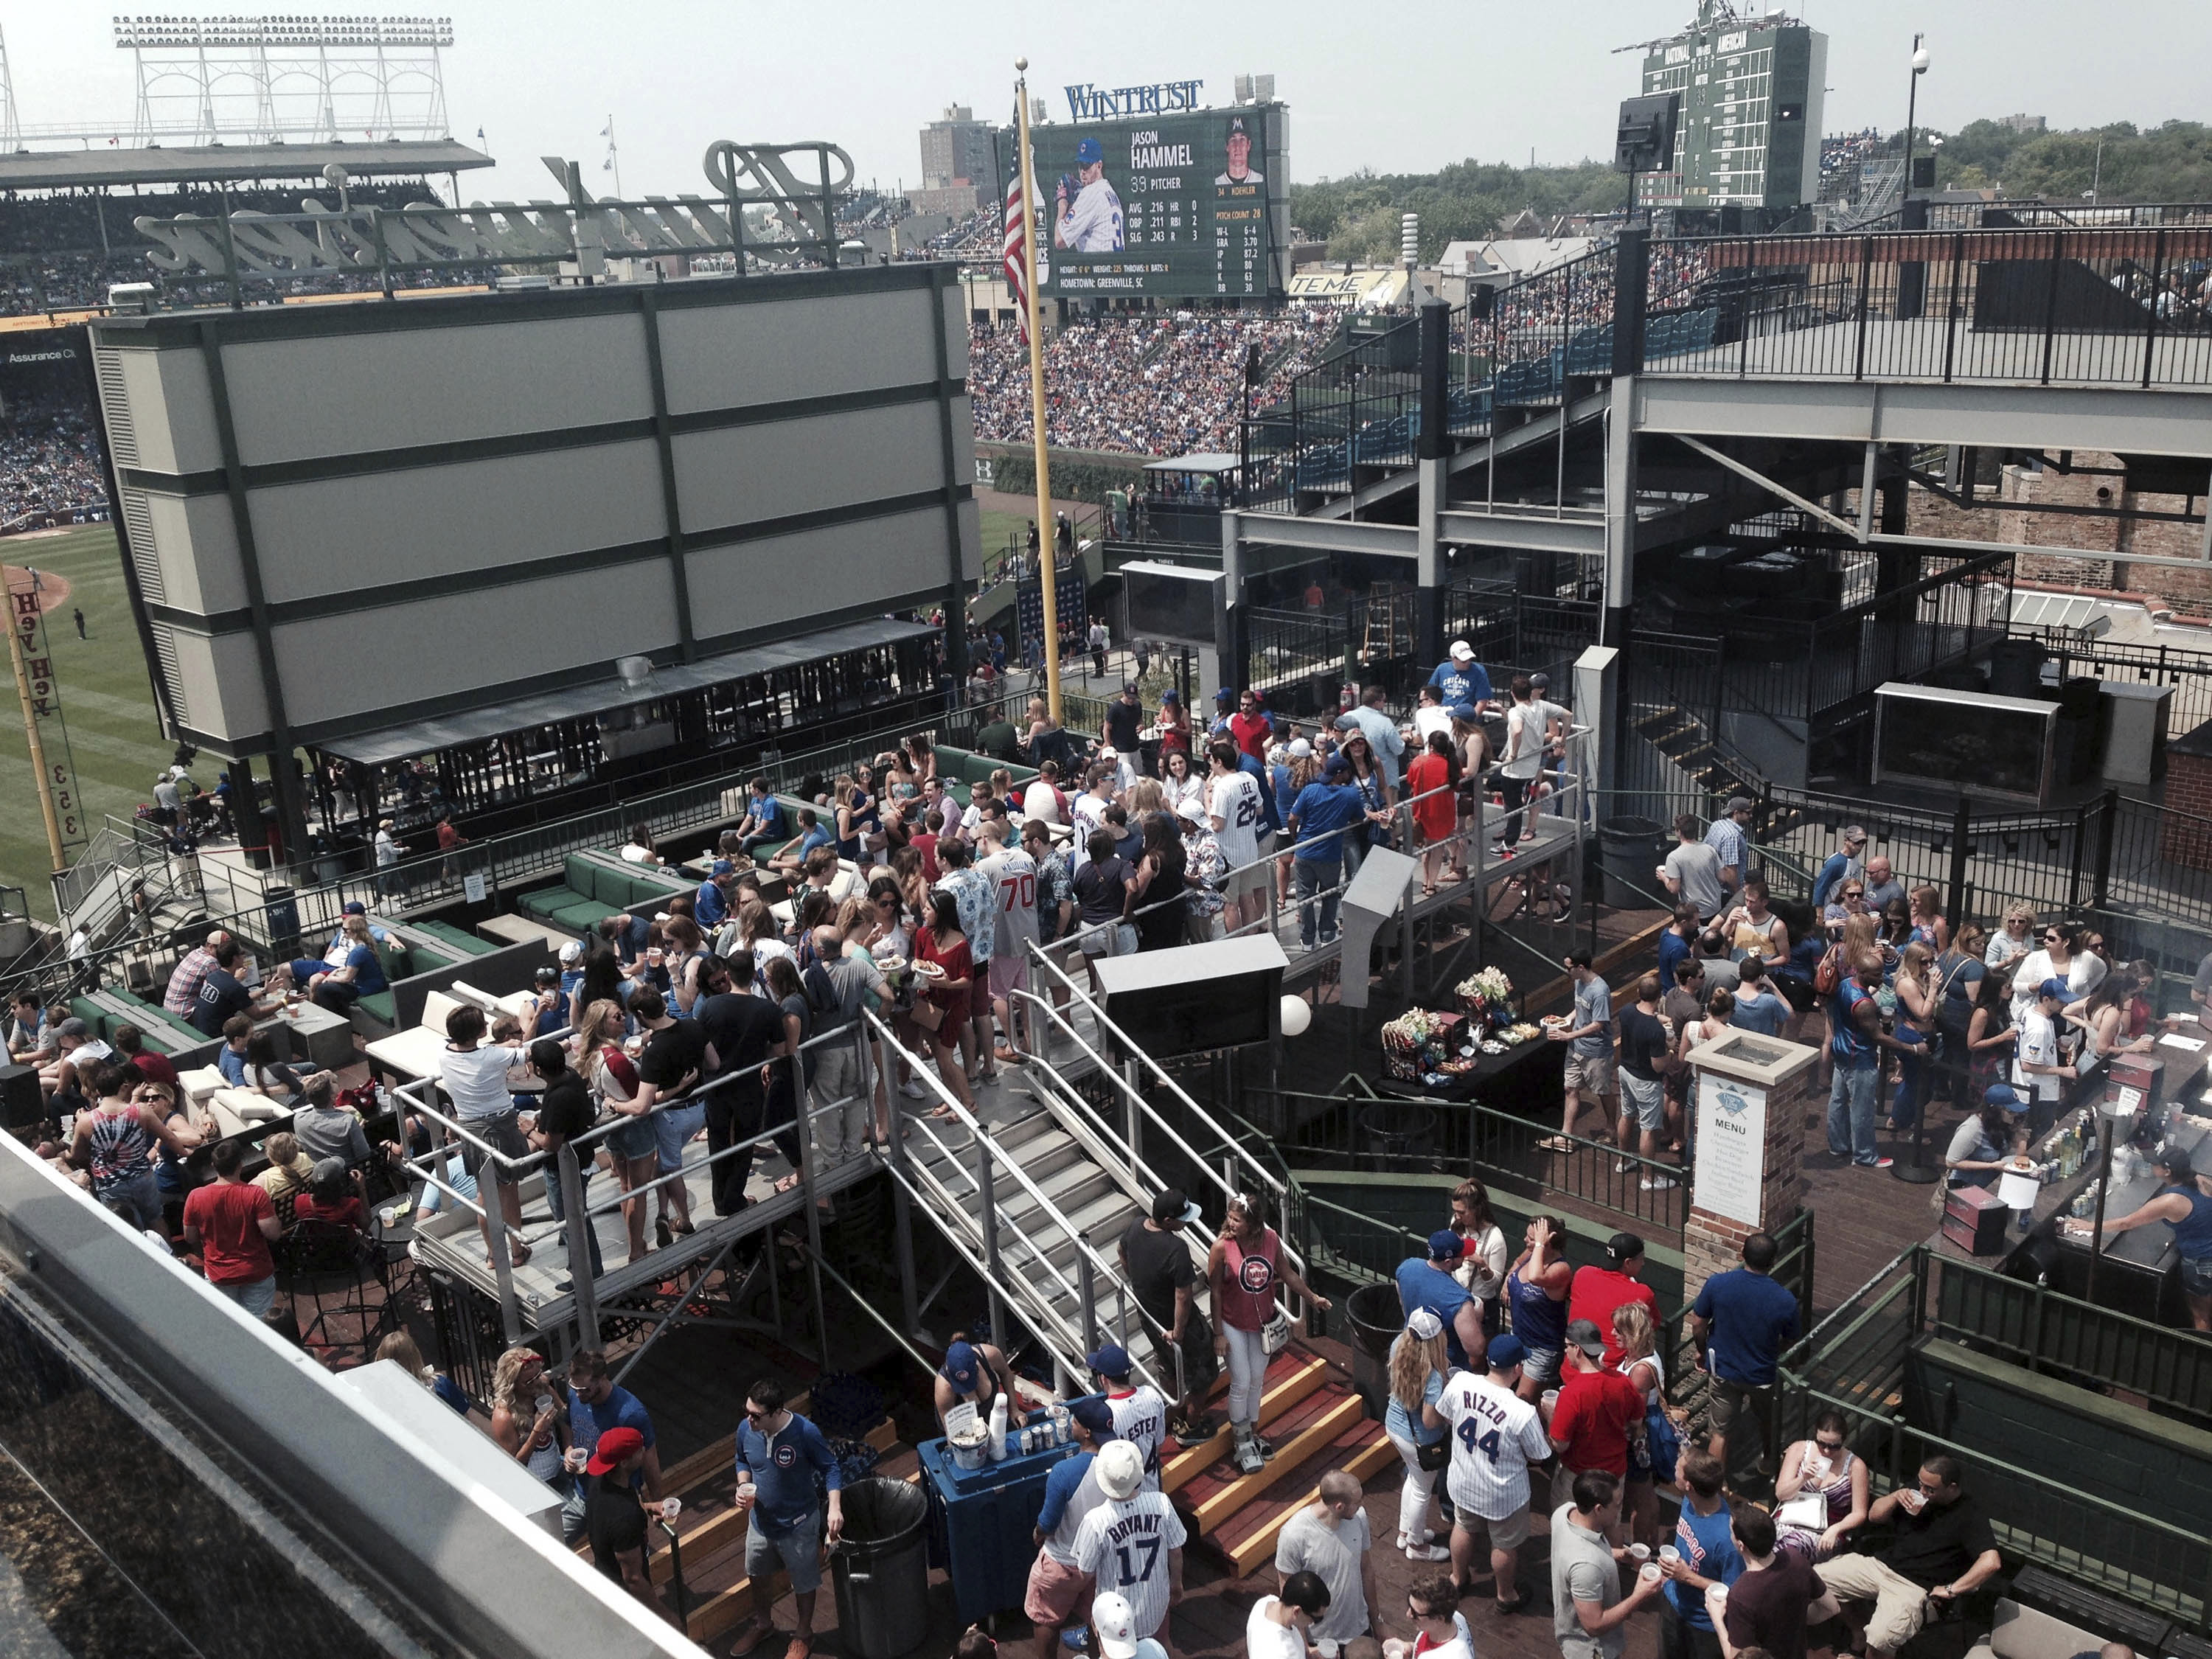 FILE - In this July 3, 2015 file photo, fans watch what they can of a baseball game between the Miami Marlins and the Chicago Cubs on a rooftop across the street from Wrigley Field in Chicago. Not since Oct. 10, 1945, has a World Series game been played a